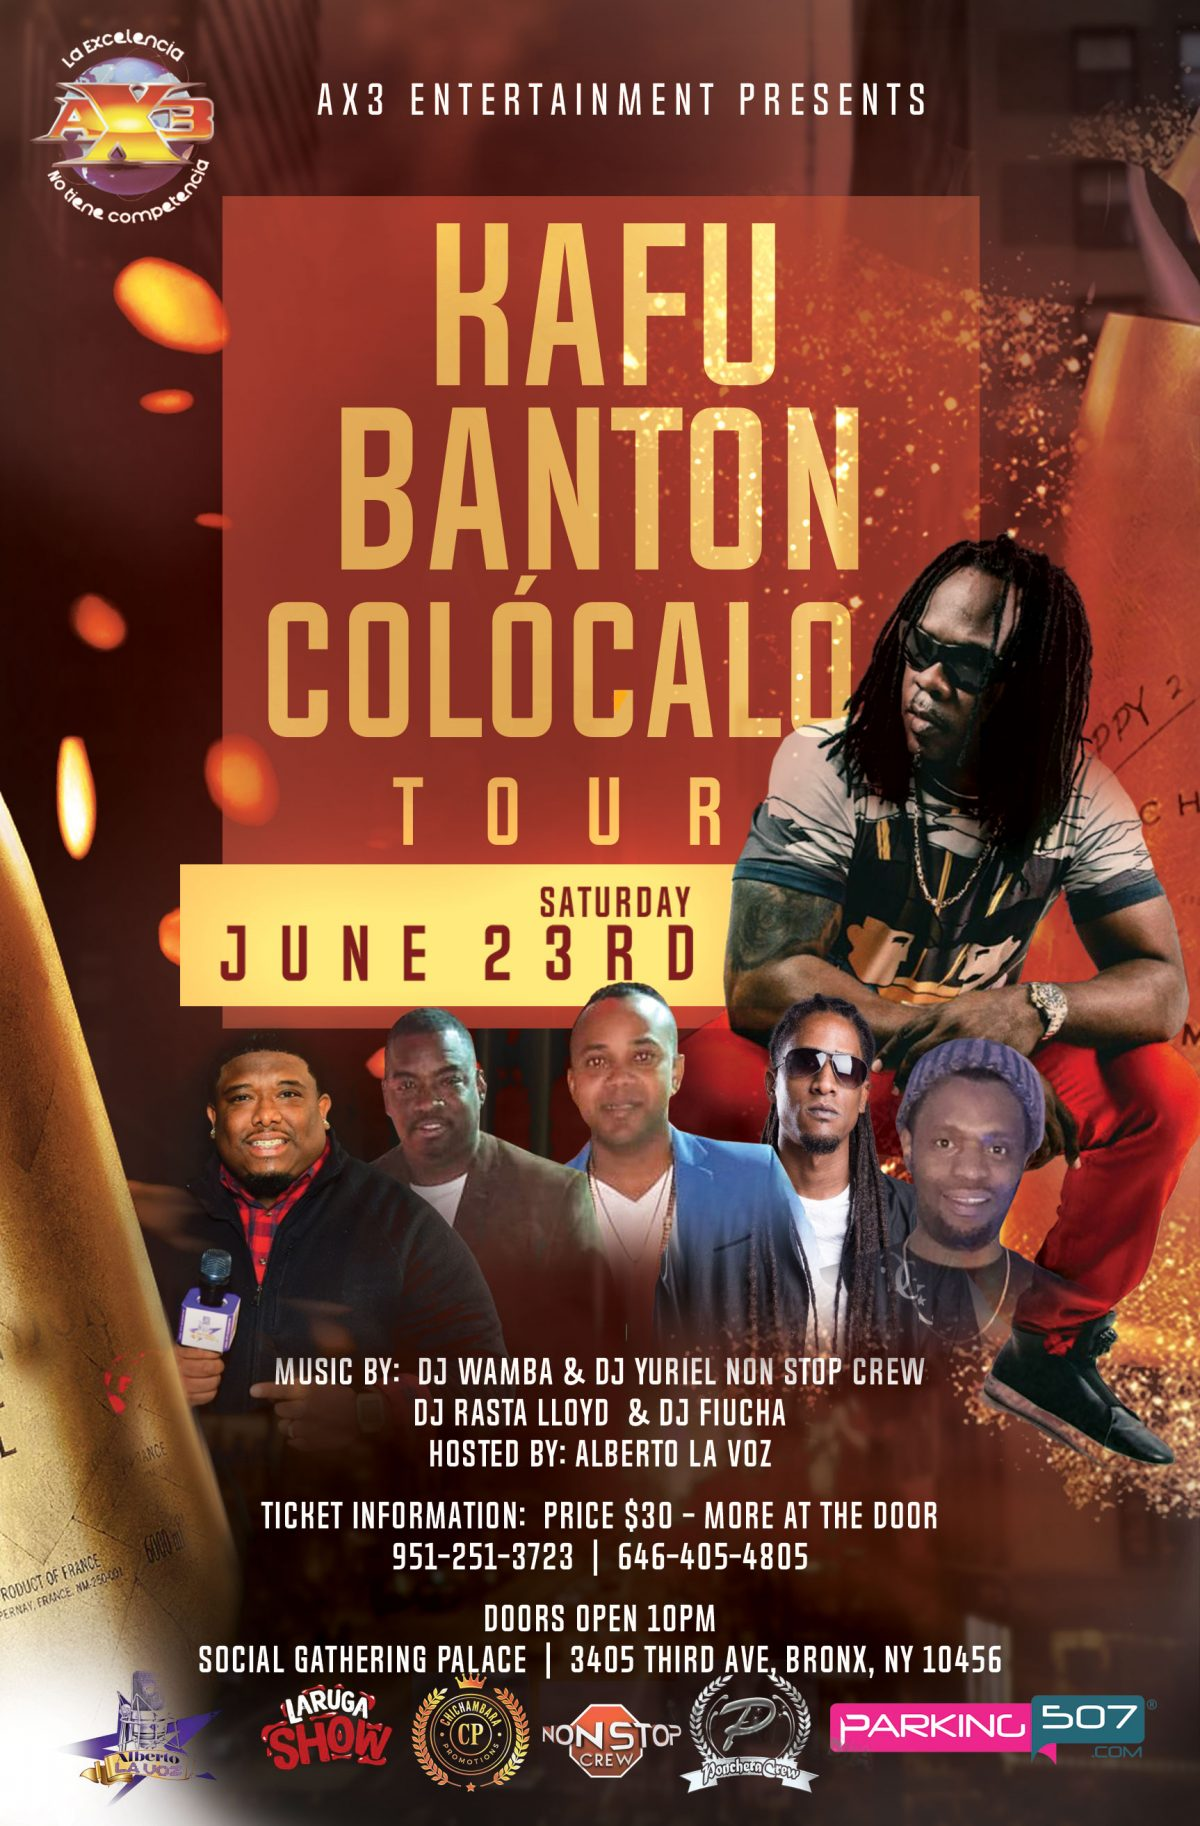 AX3 Entertainment Kafu Banton Colocalo Tour